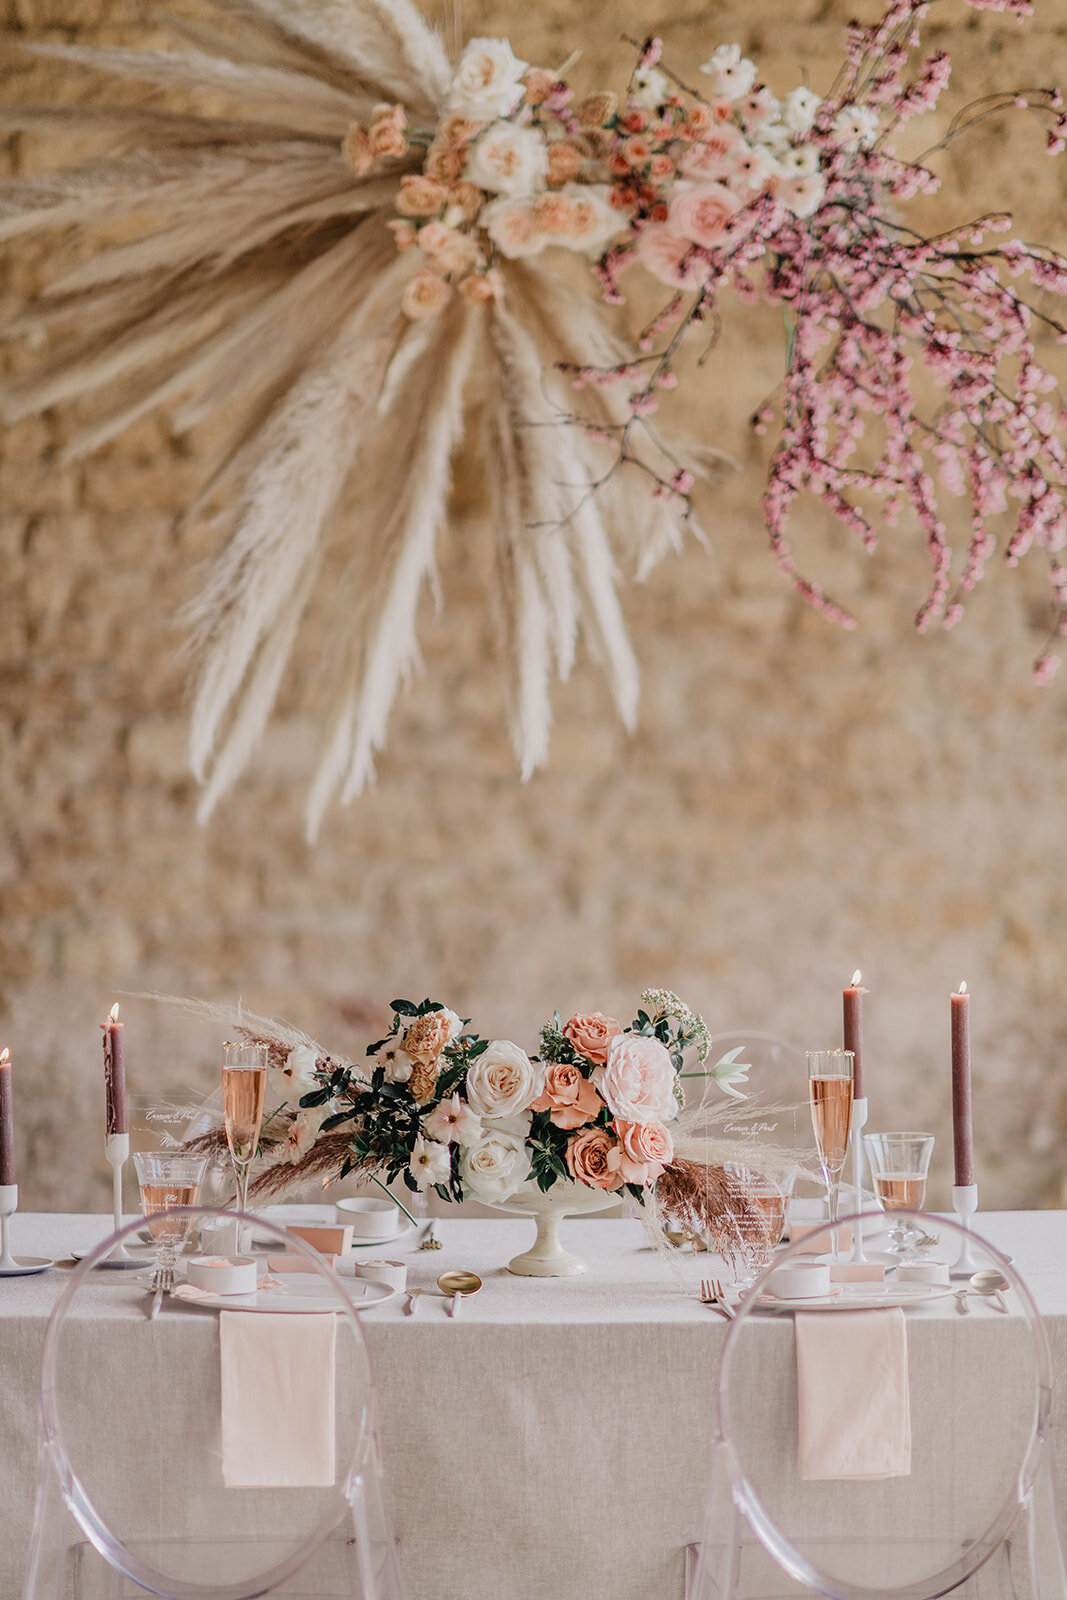 MorganeBallPhotography-Inspimariage-Chateau-ThonneLesPres-LovelyInstants-Scenery-2286_websize